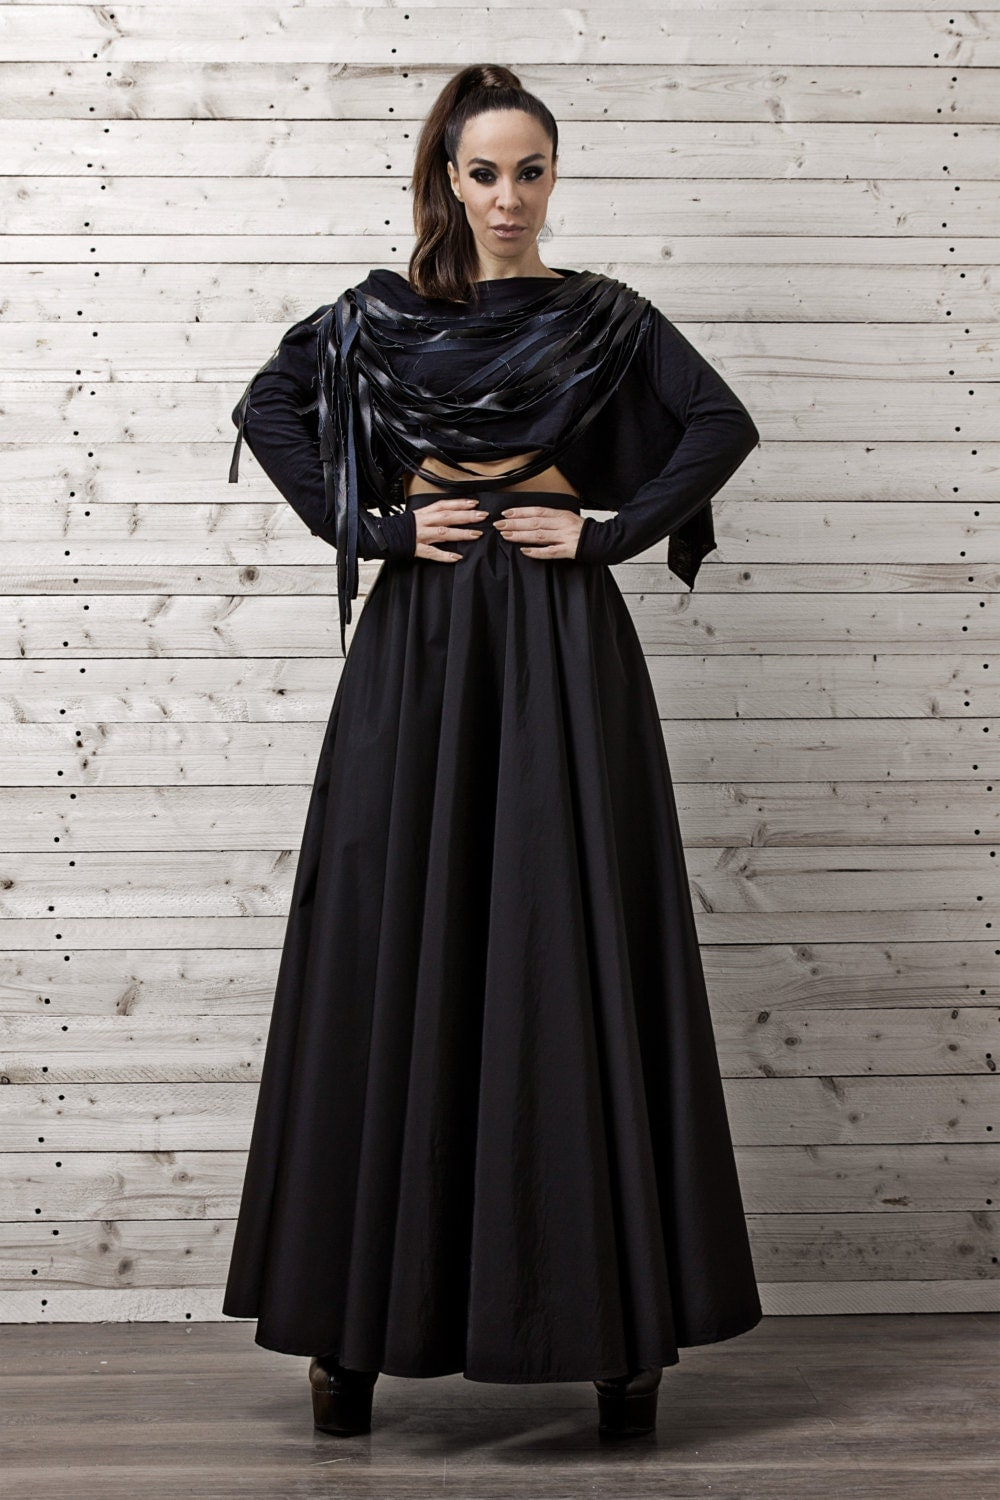 Cheap ruffle long skirt, Buy Quality long skirt directly from China maxi skirt Suppliers: WBCTW Summer Satin Ruffle Long Skirt Black High Waist Skirt Elegant Party Women Skirt Solid XXSXL Plus Size Maxi Skirts Enjoy Free Shipping Worldwide! Limited Time Sale Easy Return/5(20).